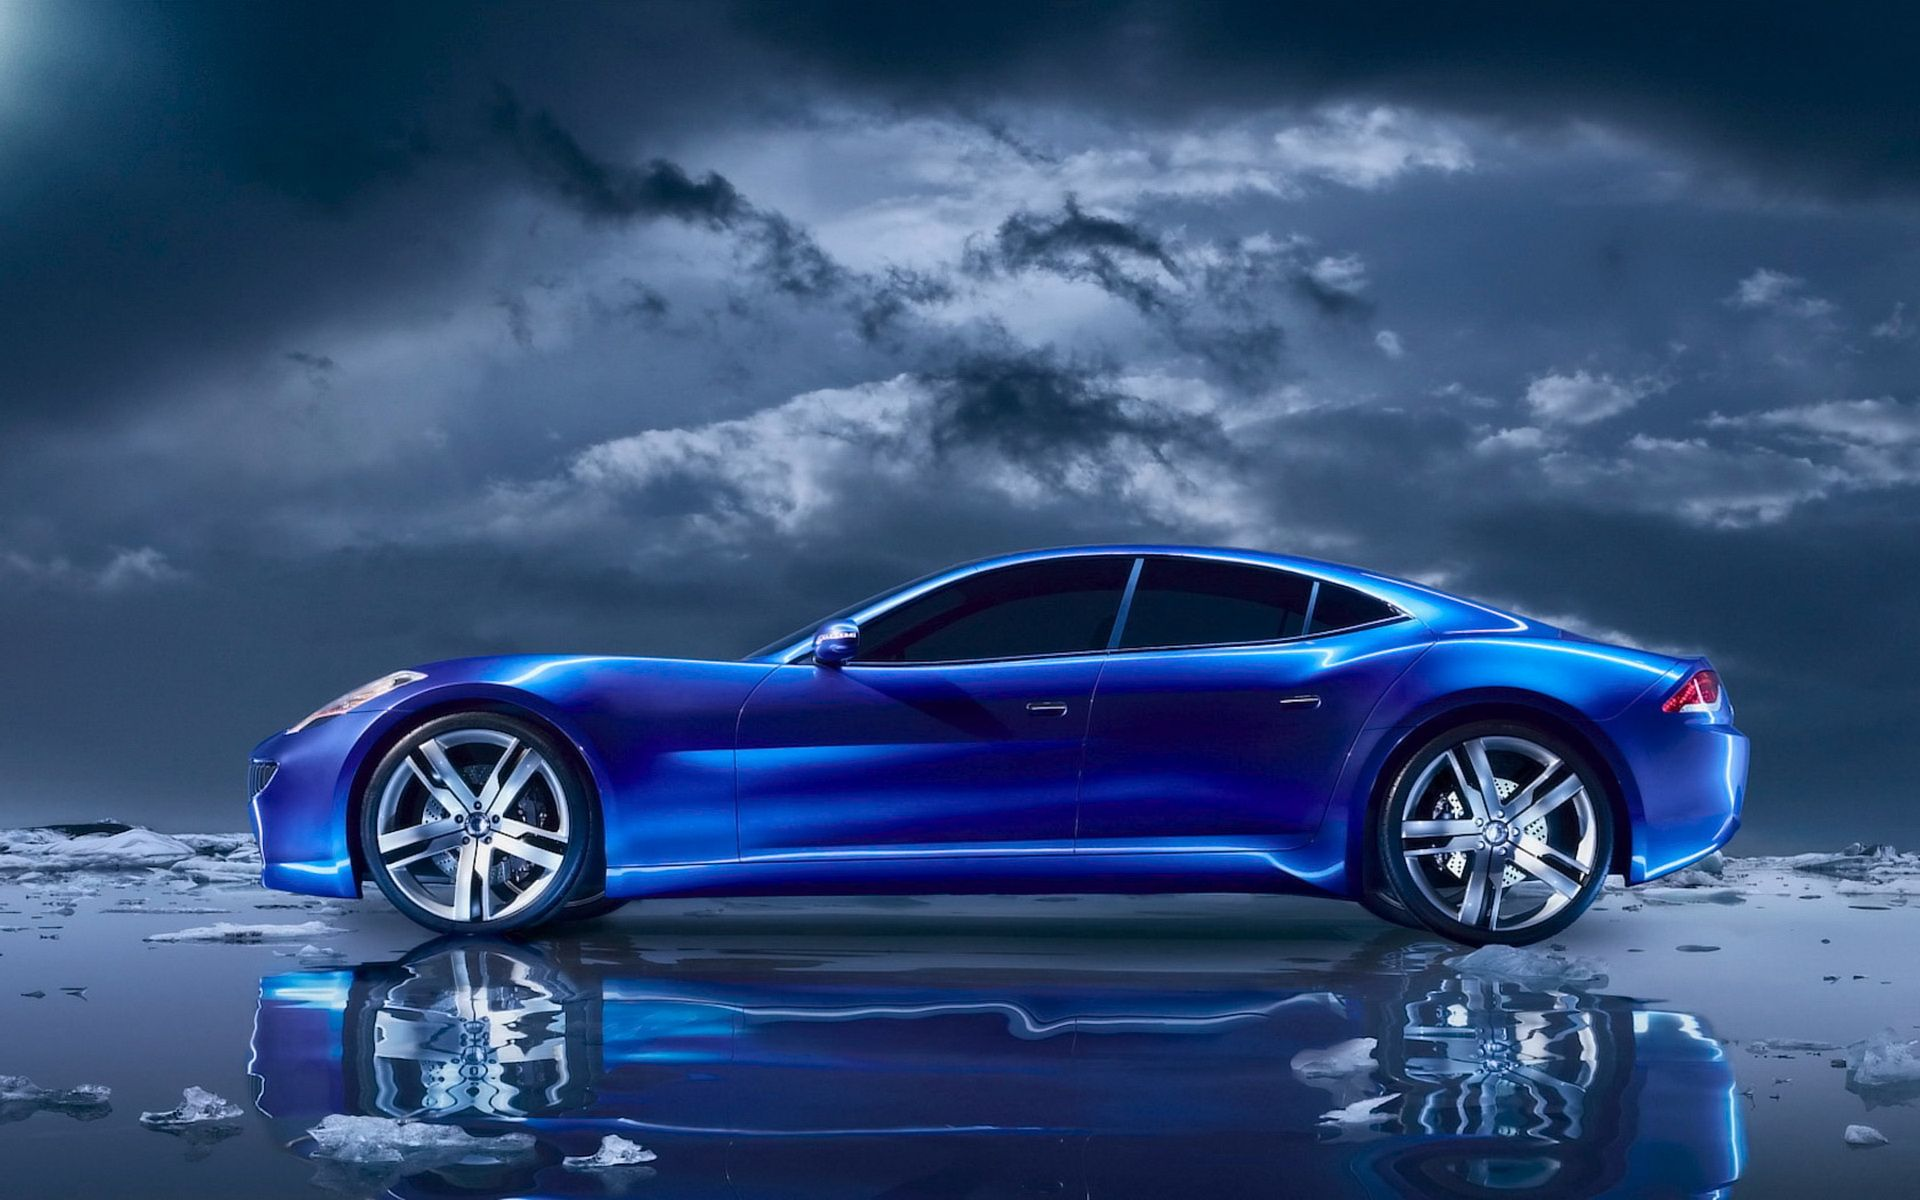 Car Wallpapers Cars wallpapers themes desktop background images 1920x1200